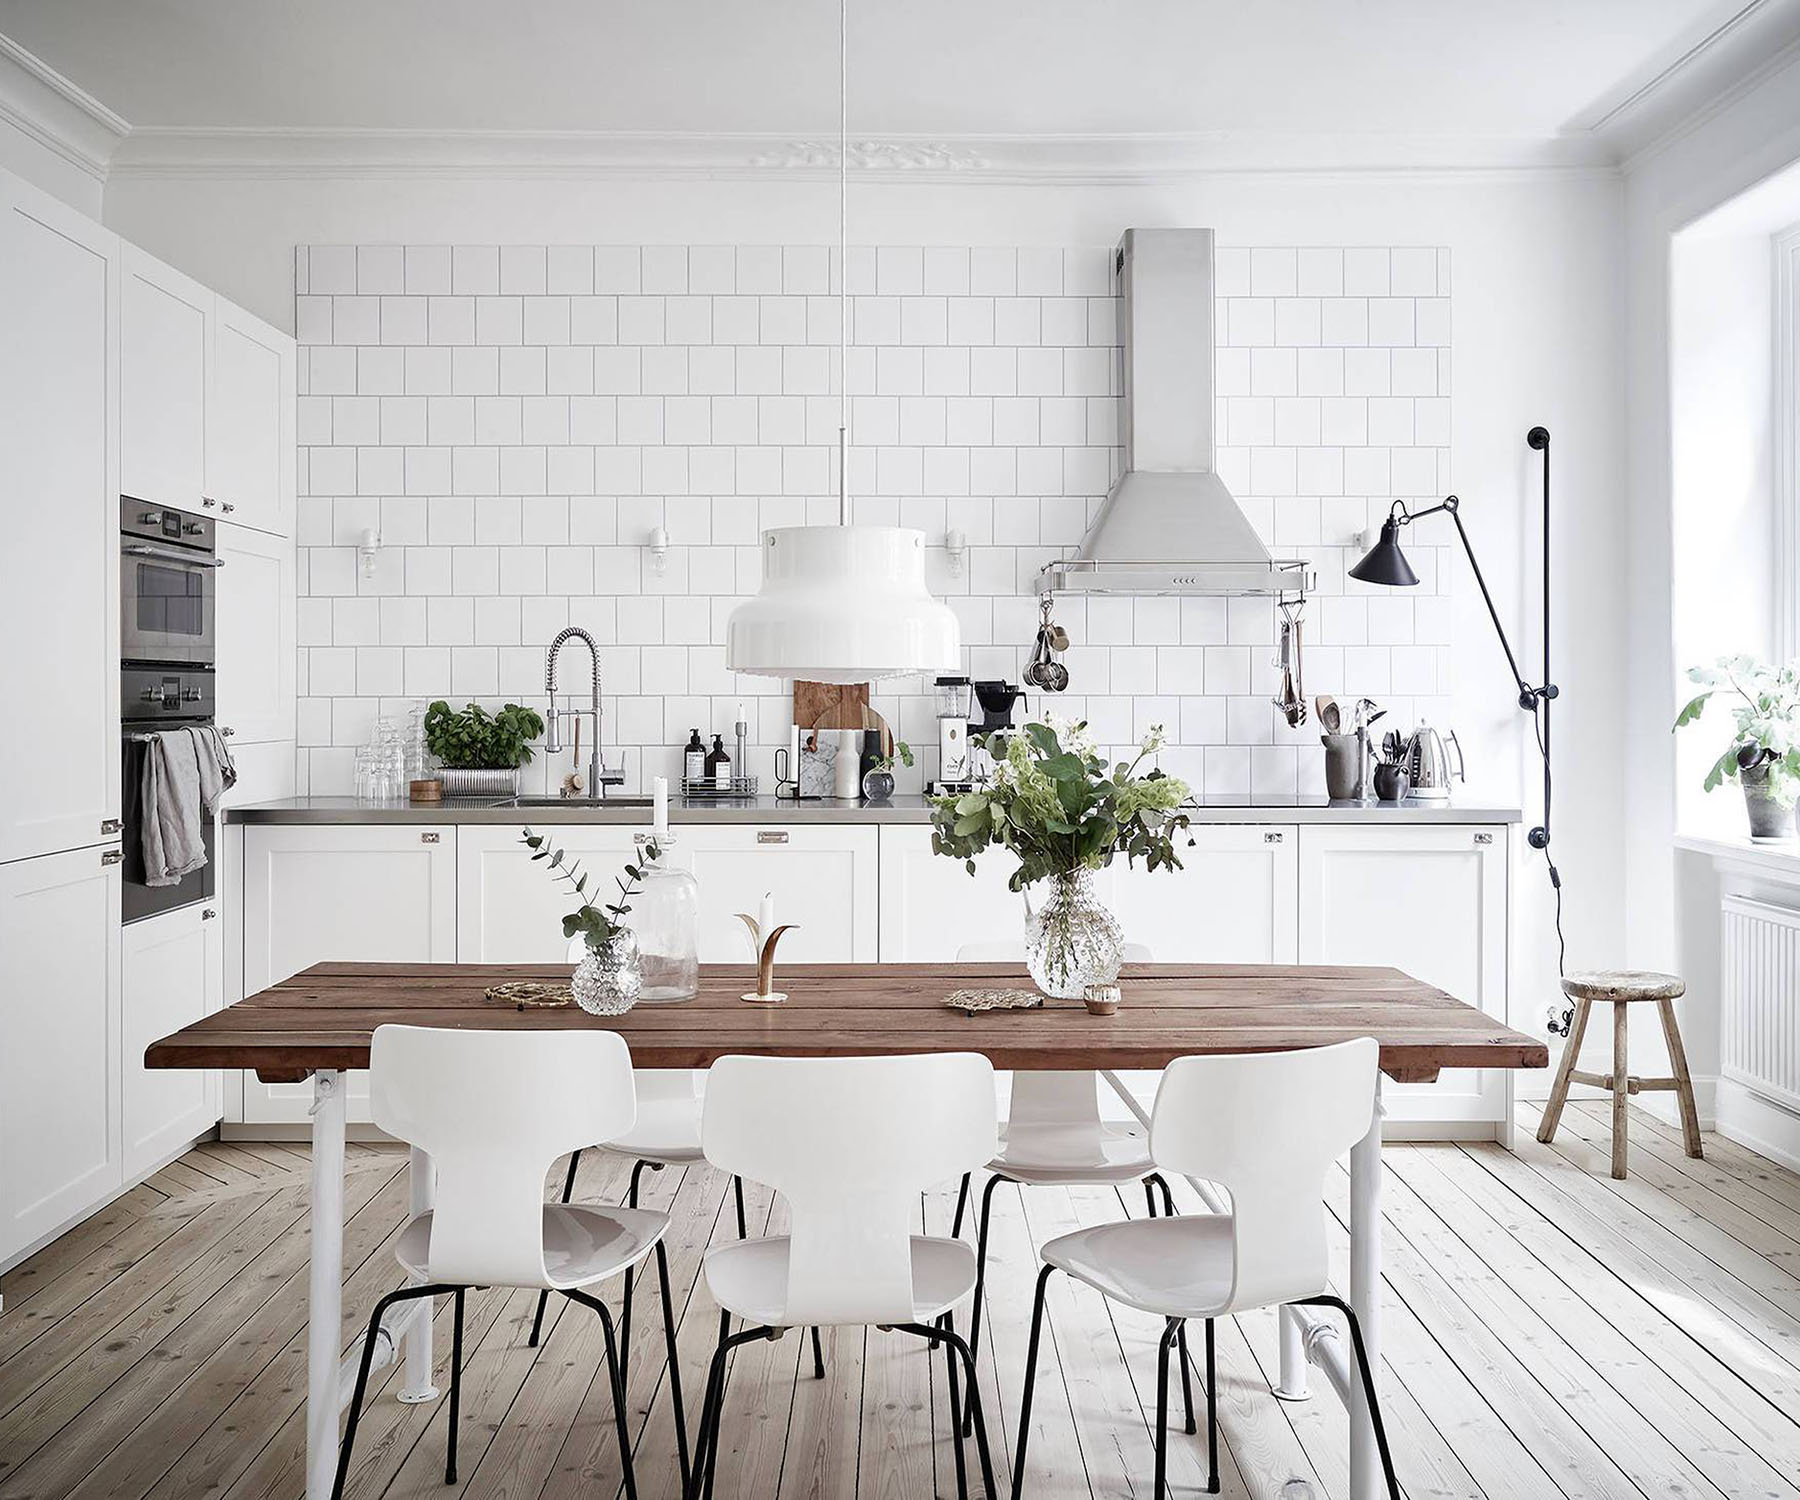 10 Tips For Adding Scandinavian Style